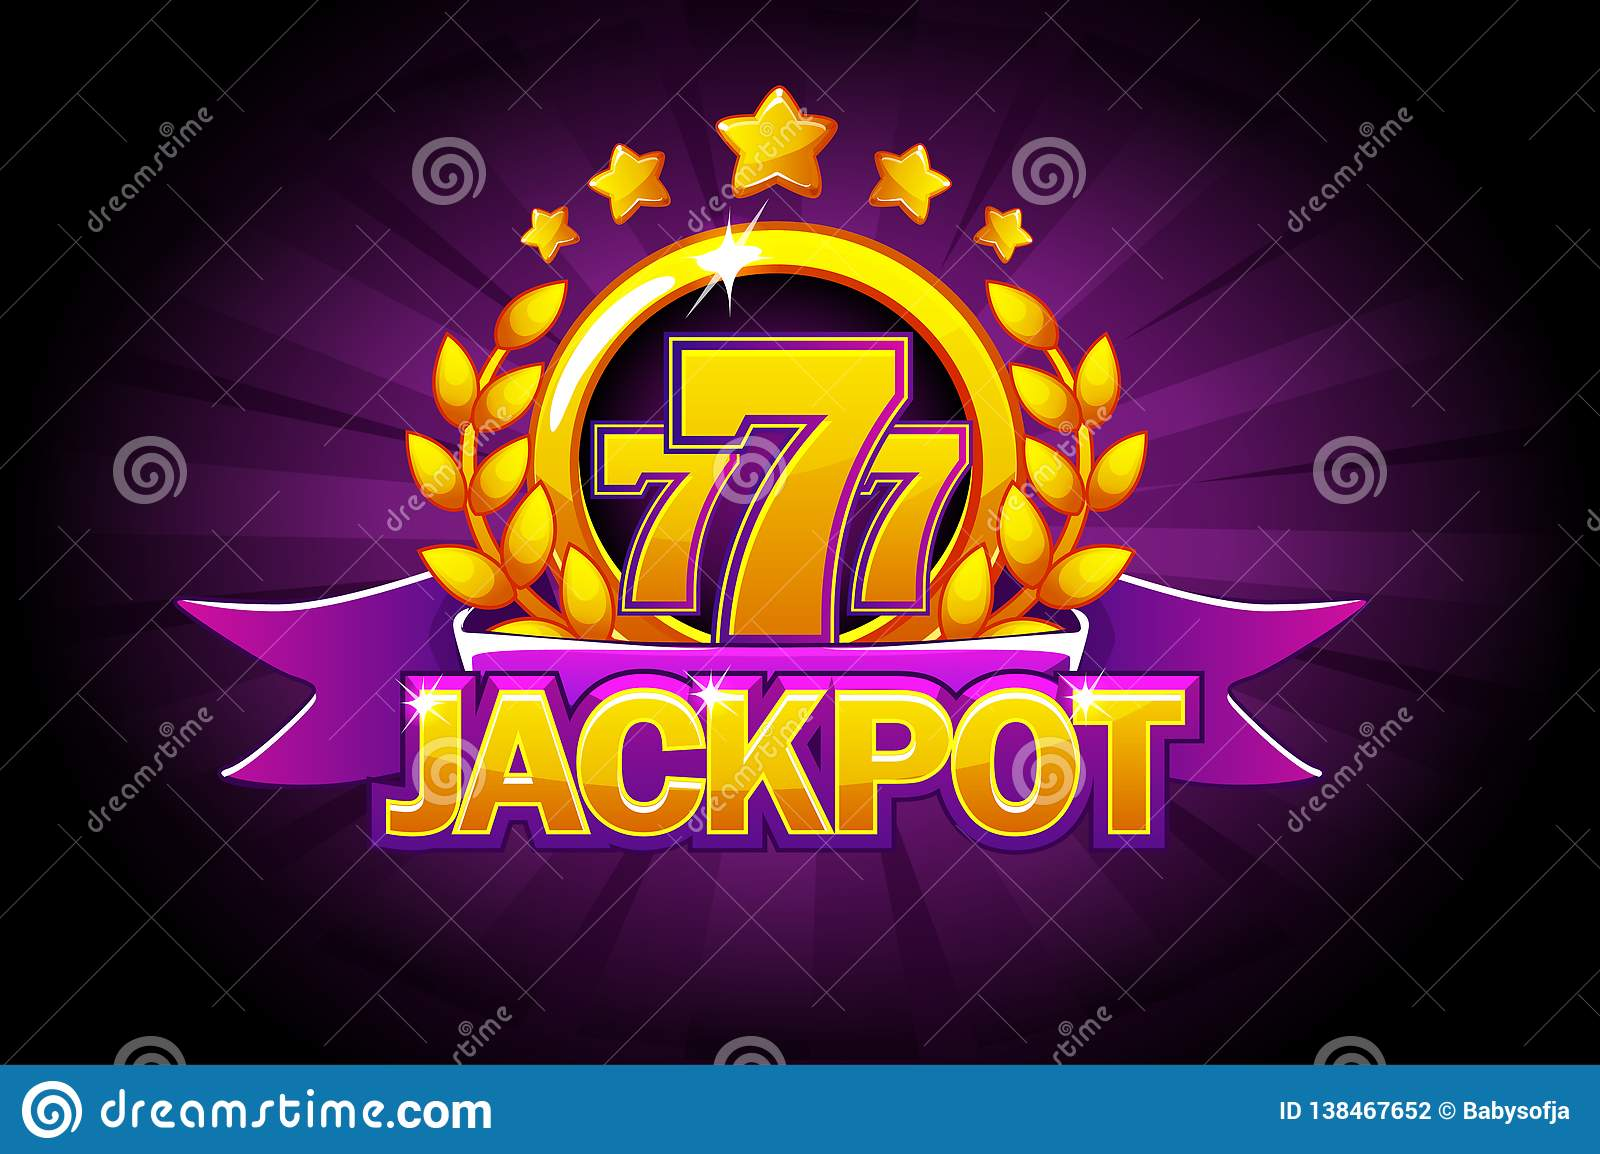 Jackpot banner with purple ribbon, 777 icons and text. Vector illustration for casino, slots, roulette and game UI